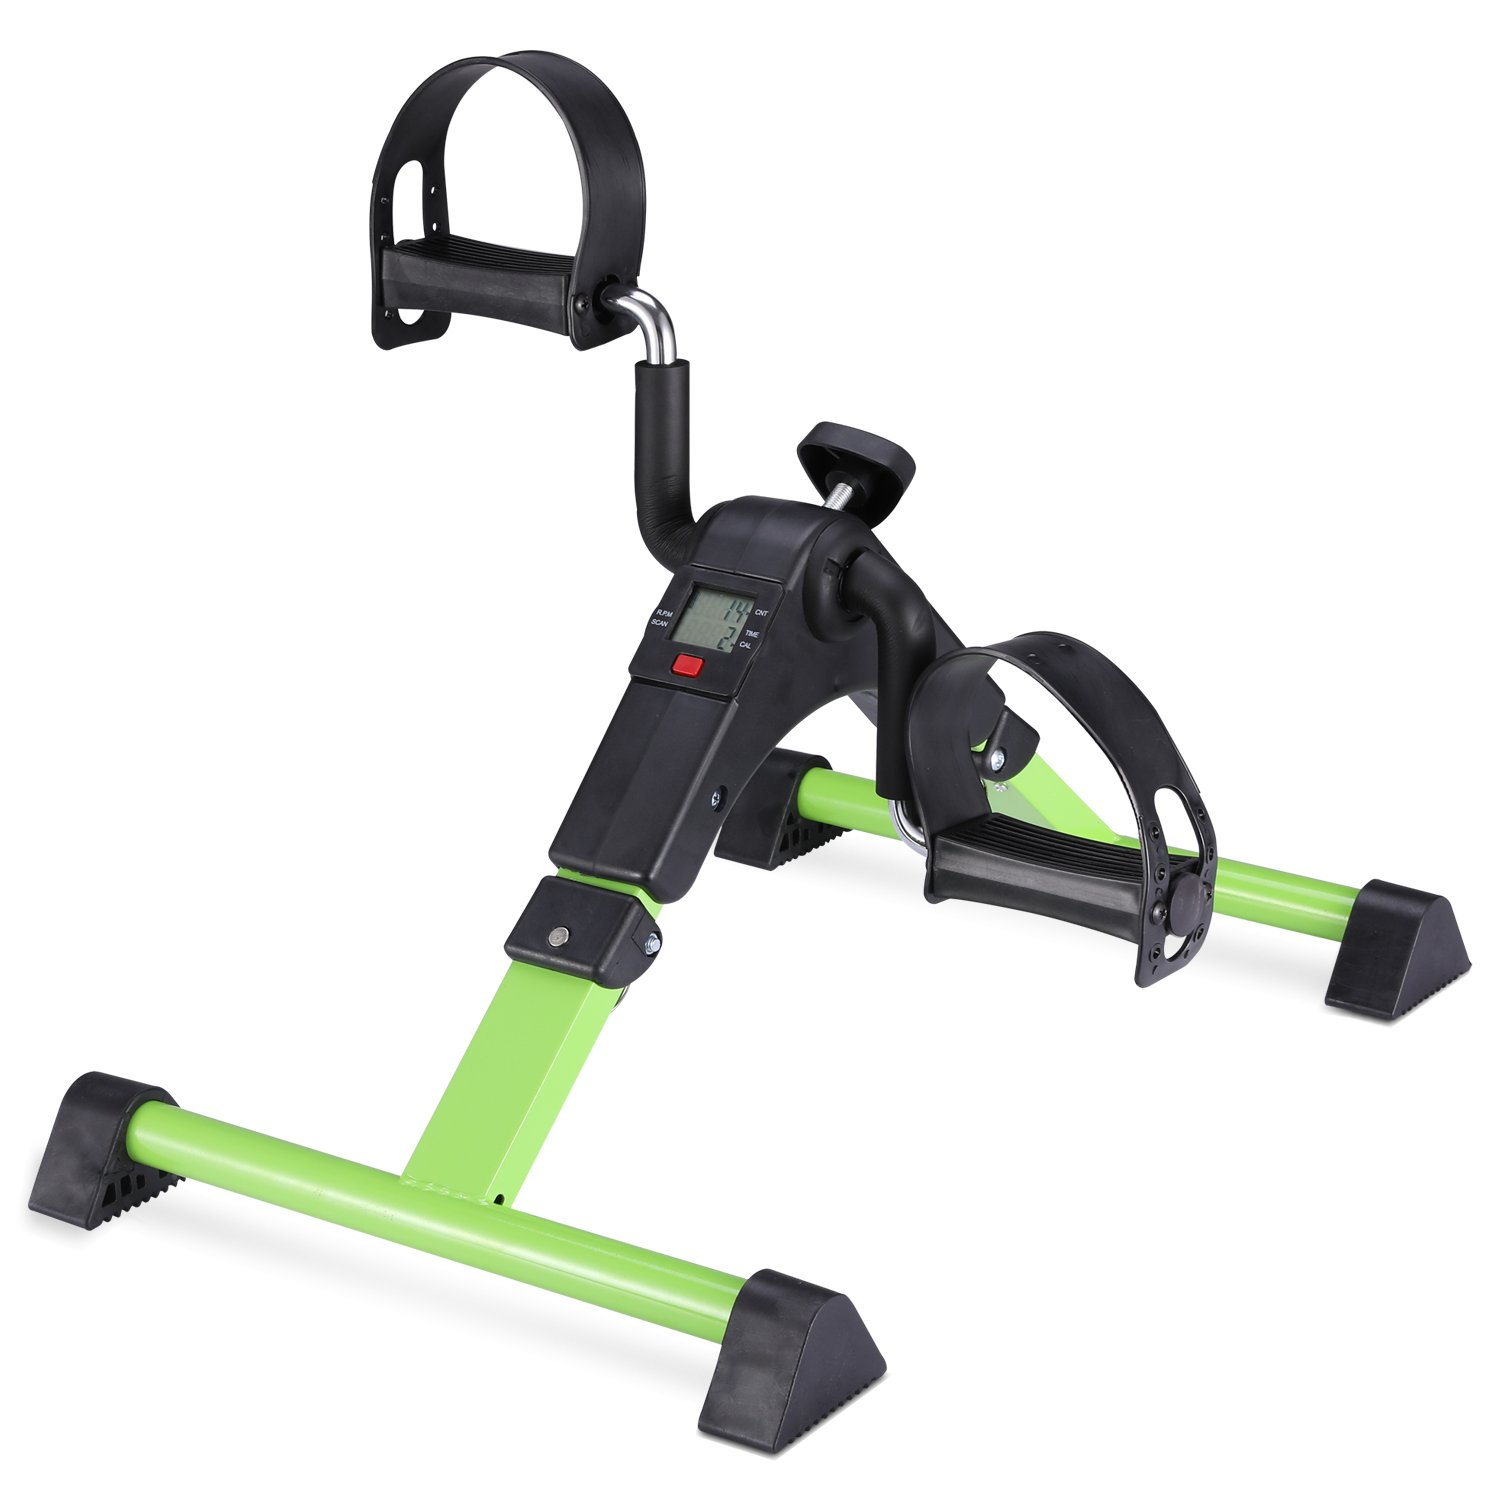 MOMODA Stationary Cycle Pedal Exerciser Desk Exercise Bike with LCD Monitor Foldable (Black/Green) by MOMODA (Image #1)